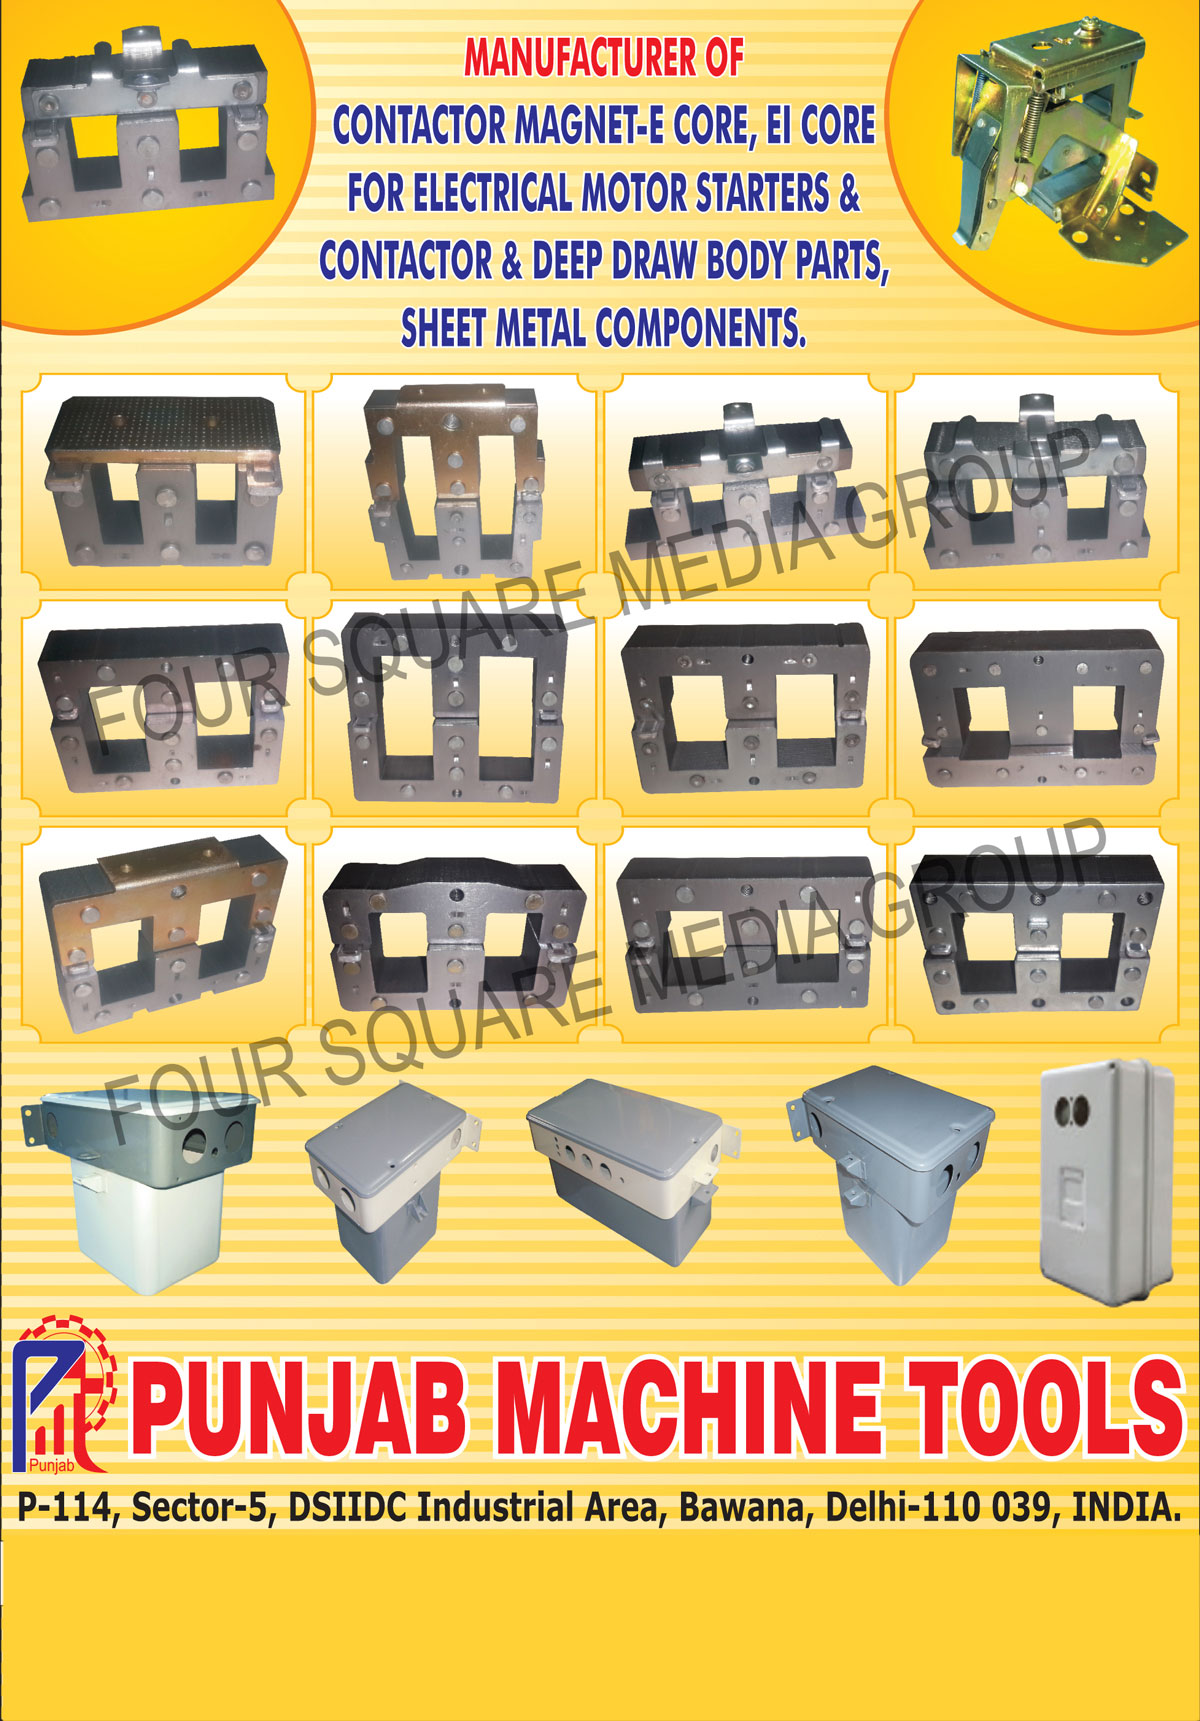 Electrical Sheet Metal Components, Bakelite Parts, Deep Draw Body Parts, Two Pole E Cores, Two Poles EI Cores, Four Pole Contactors, DOL Starter, Automatic Starters,Electircal Parts, Electrical Products, Sheet Metal Body Parts, Fully automatic Starters, Semi Automatic Starters, E Core Contactor Magnet For Electrical Motor Starters, EI Core Contactor Magnet For Electrical Motor Starters, Contactor Magnet For Electrical Motor Starters, Deep Draw Body Parts For Electrical Motor Starters, Sheet Metal Components For Electrical Motor Starters